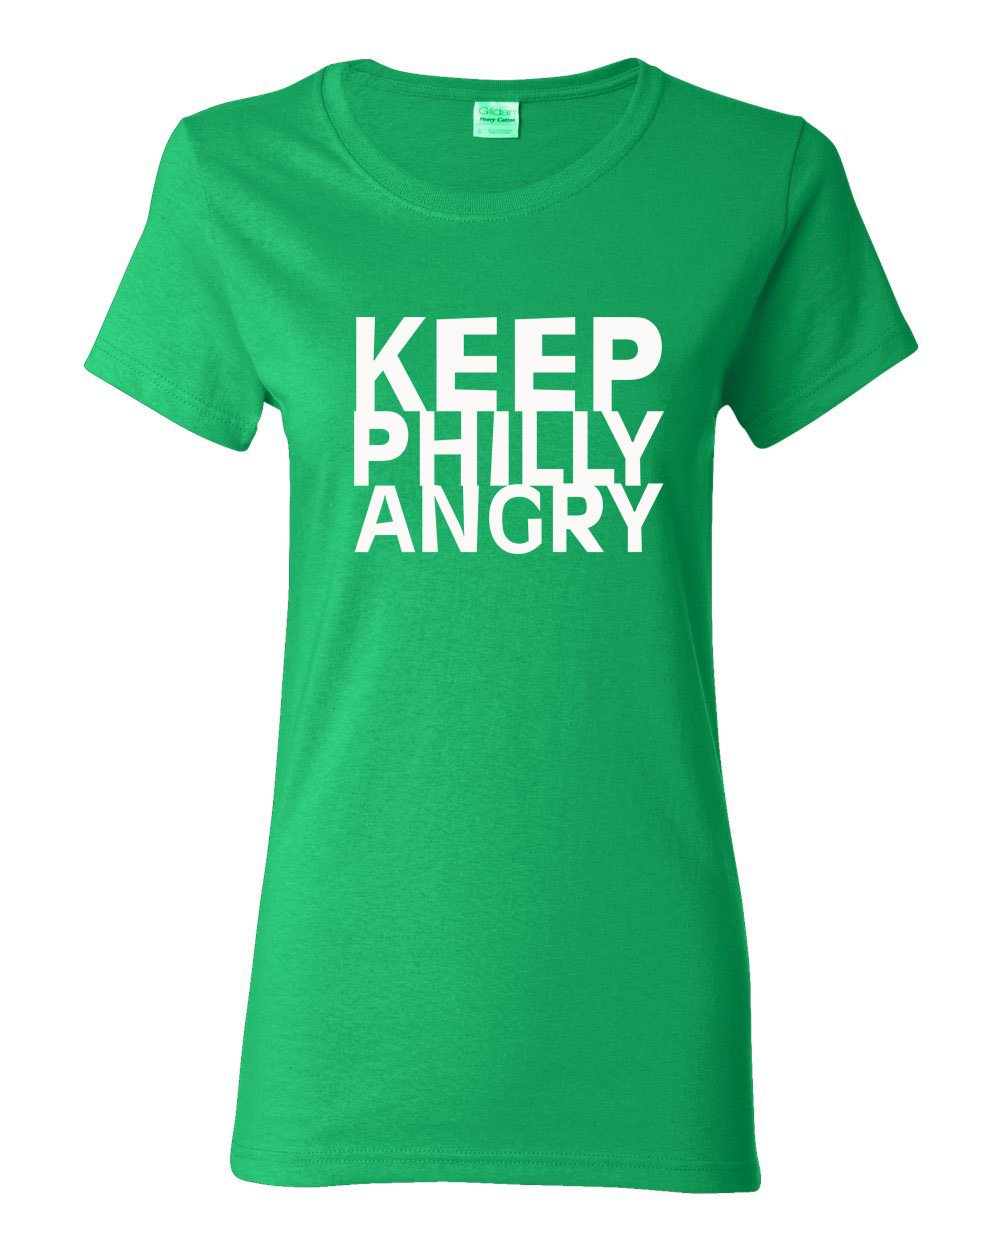 Keep Philly Angry White Ink LADIES Missy-Fit T-Shirt